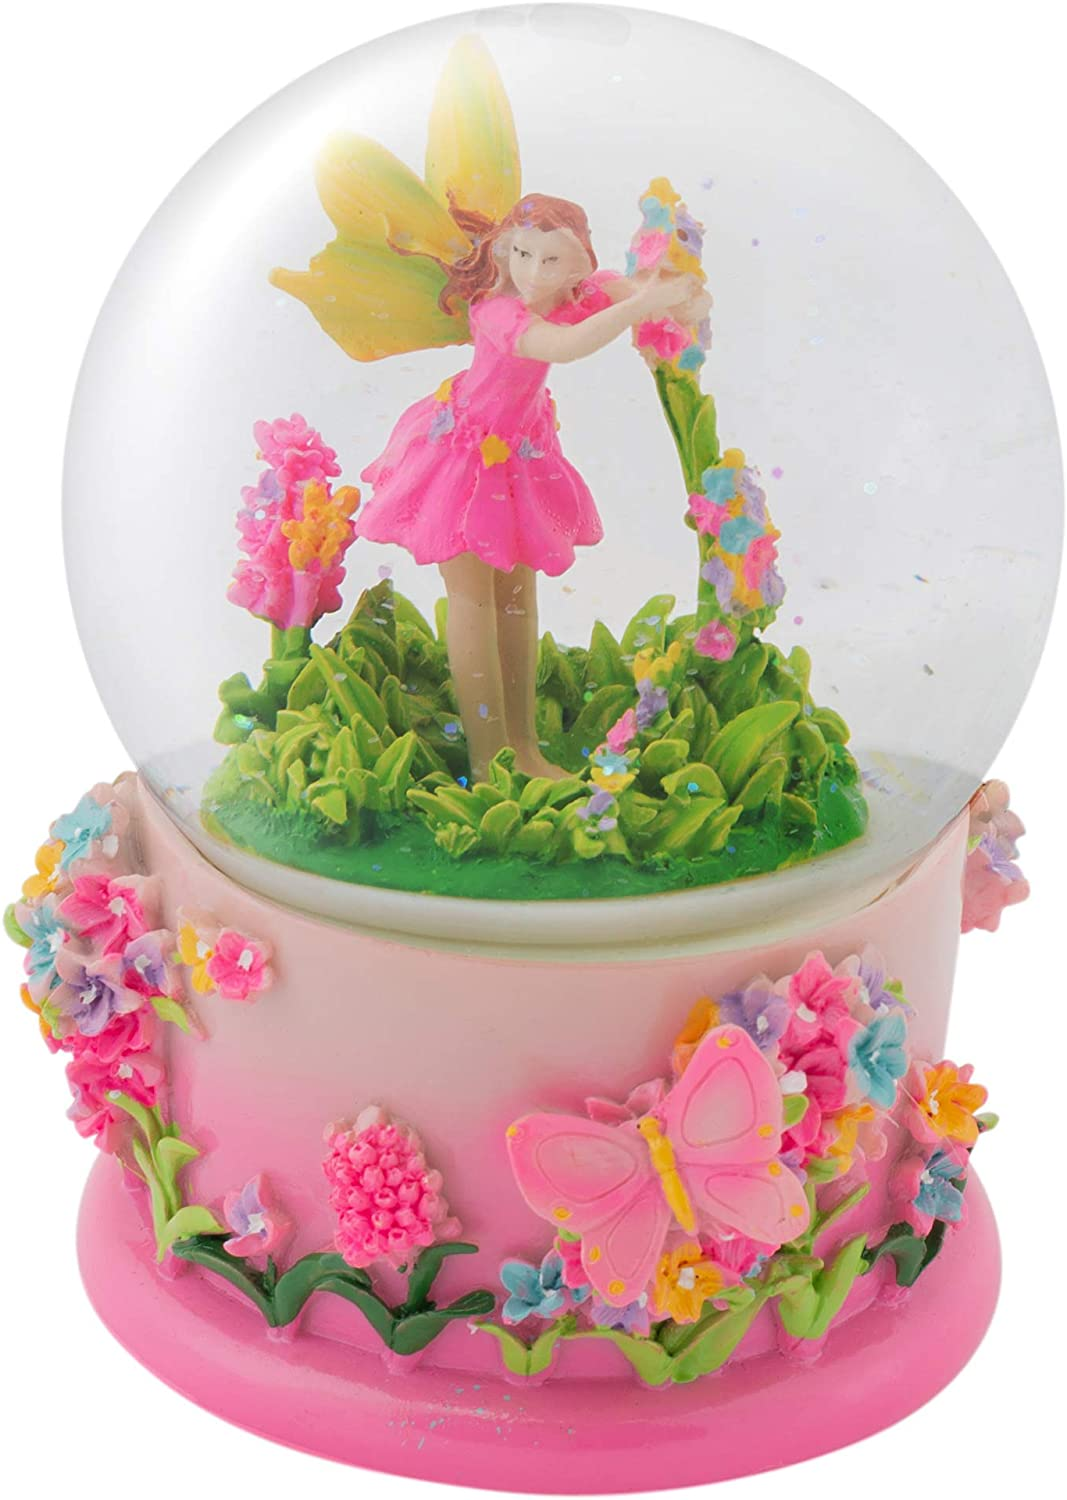 Elanze Designs Magical Fairy in Rotating Garden 100MM Musical Water Globe Plays Tune Beautiful Dreamer